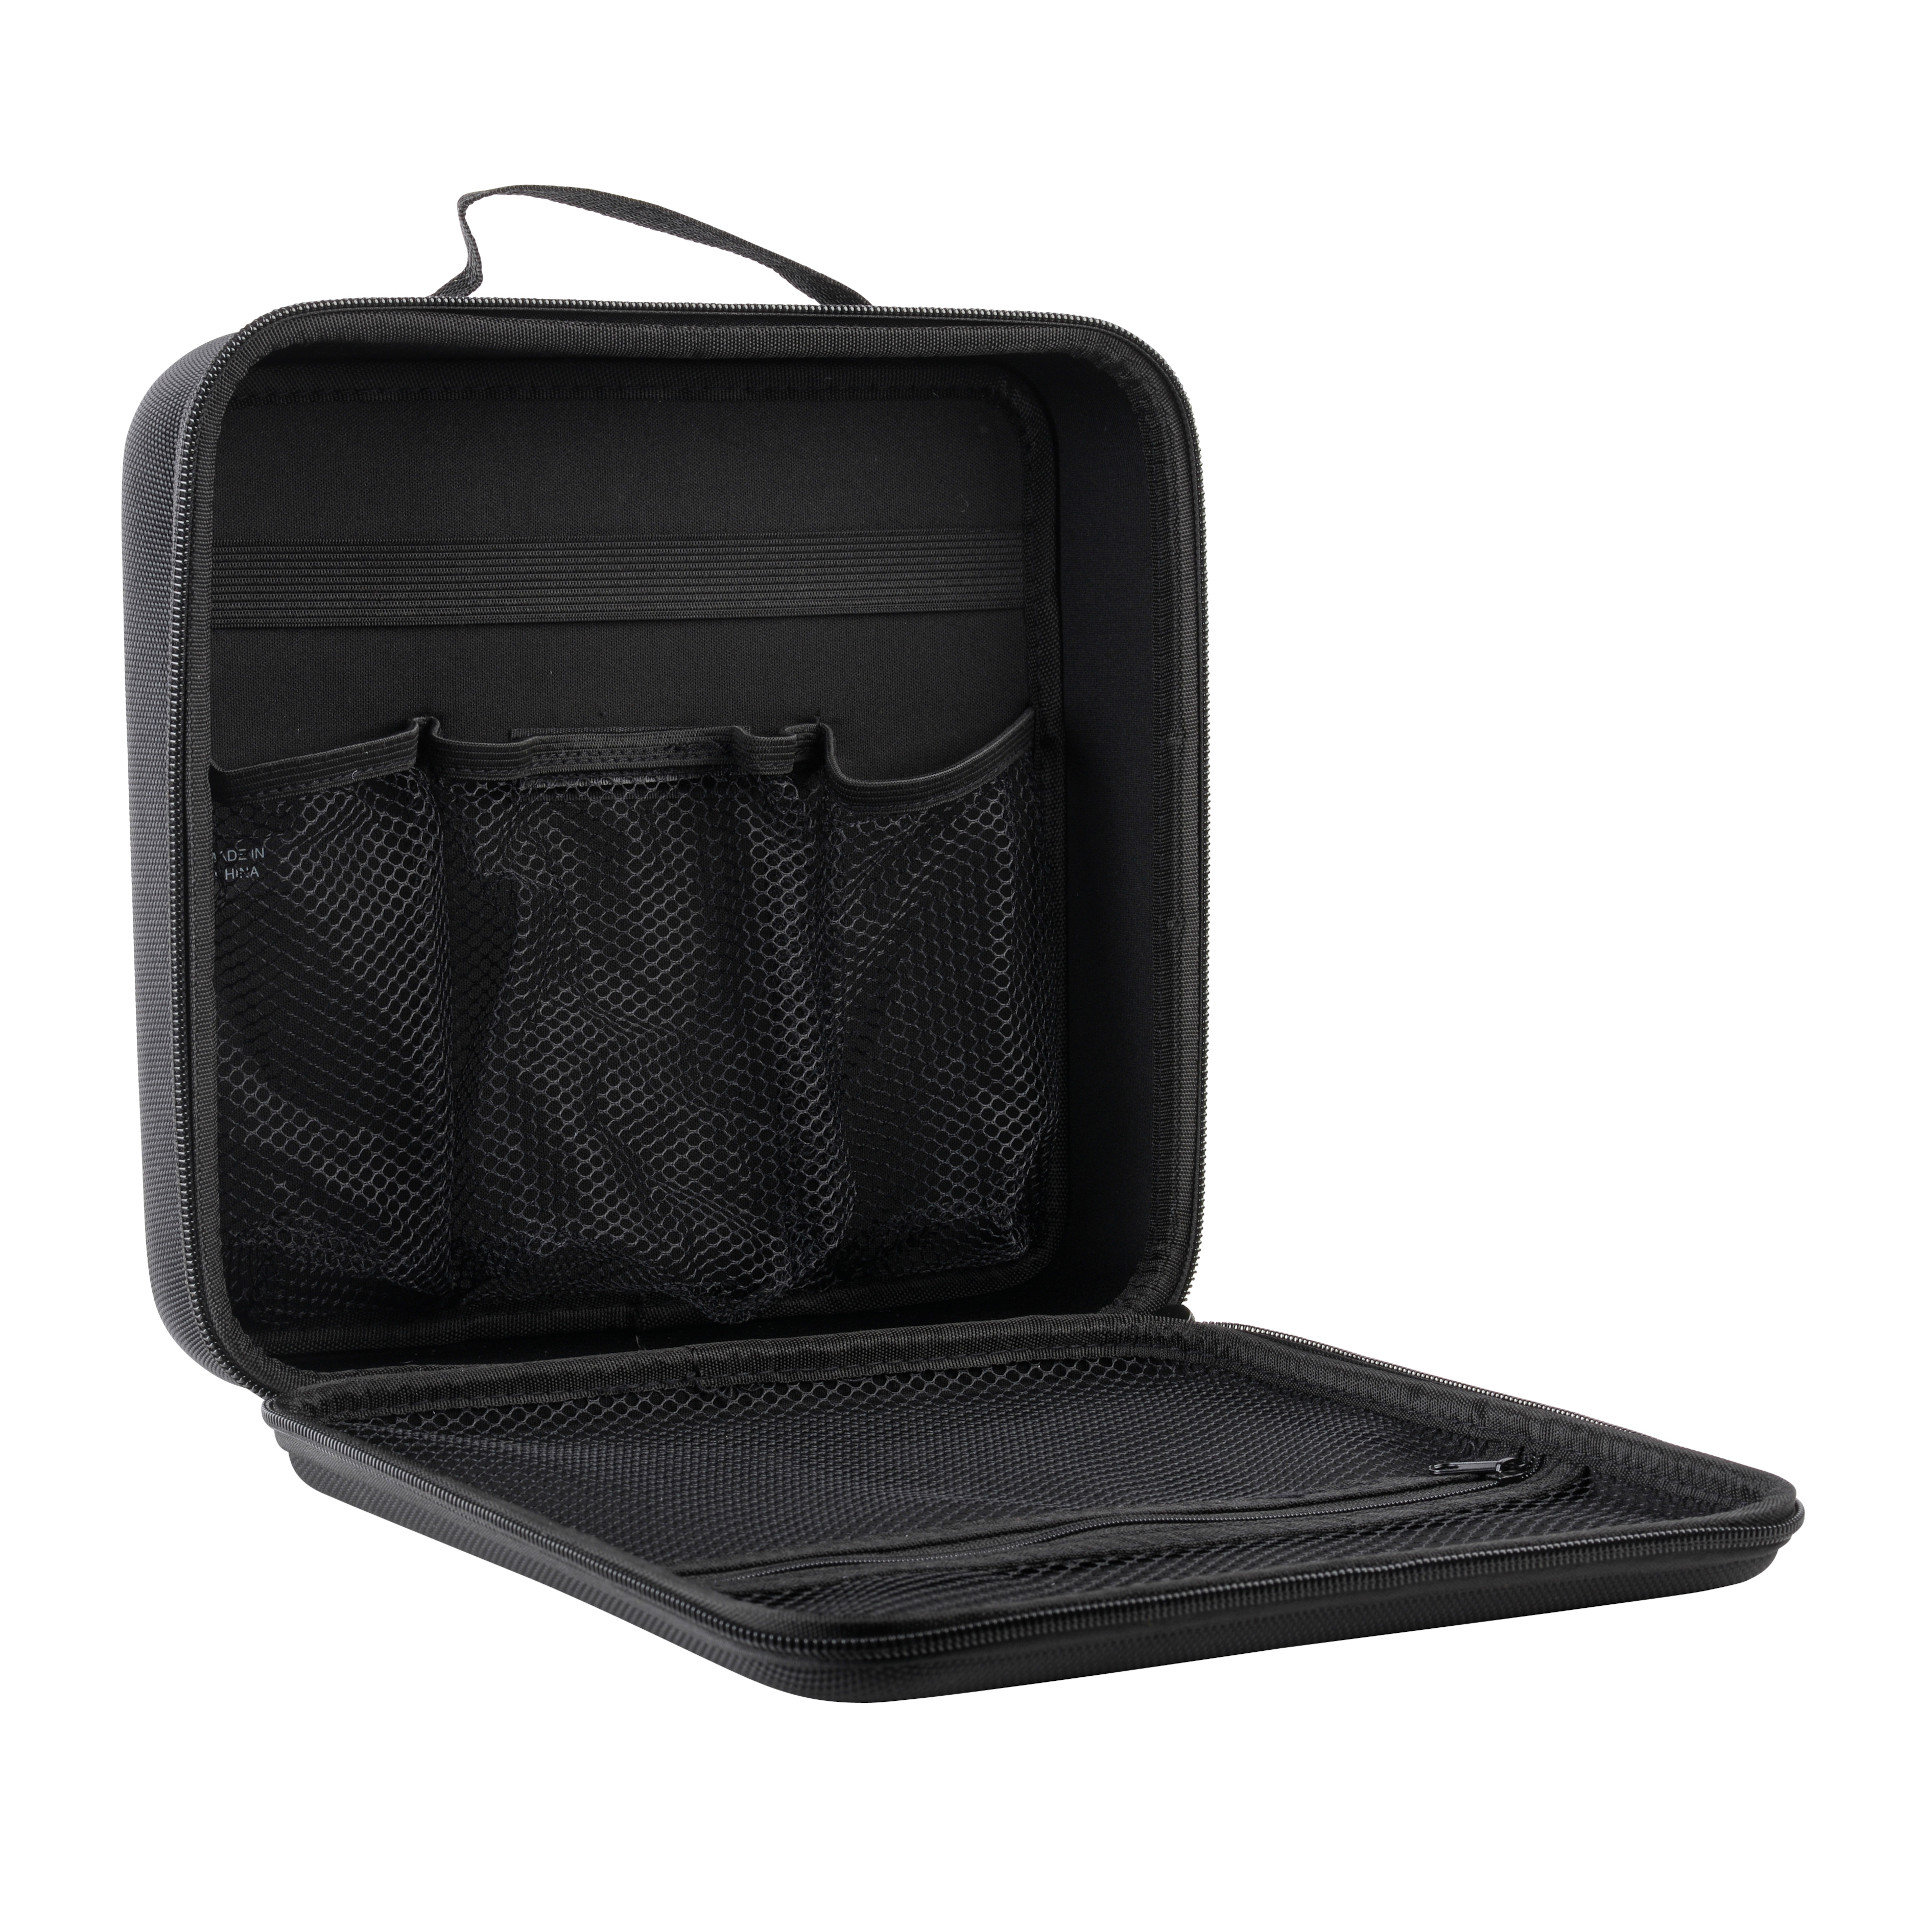 motorola PMLN7221 Carry Case